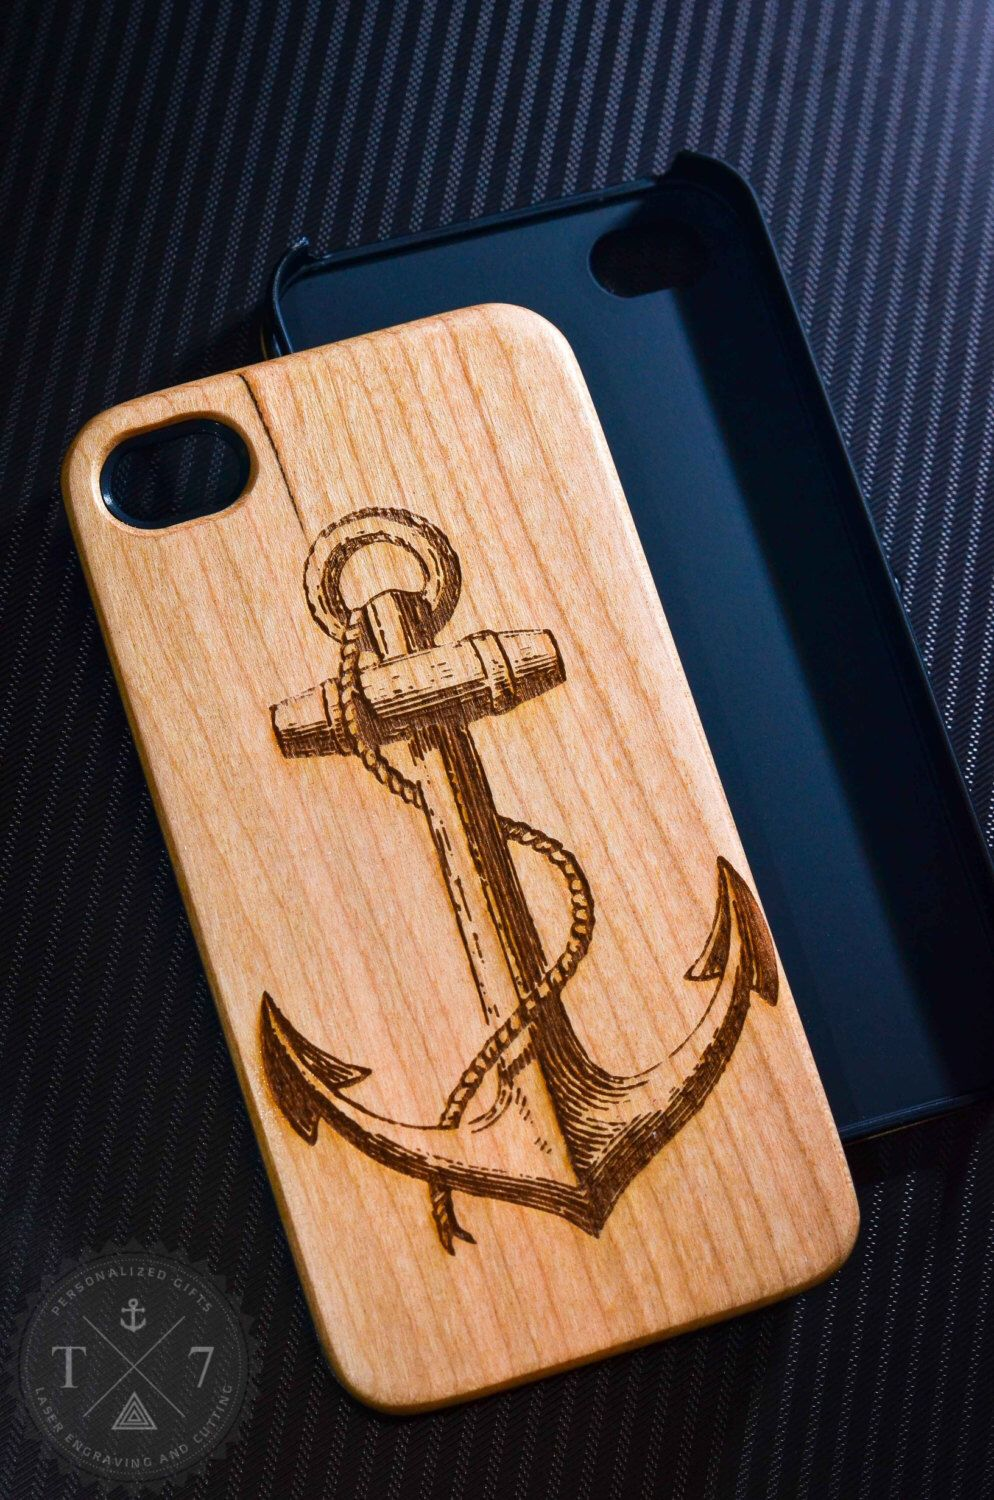 Anchor vintage wooden iphone s iphone case walnut bamaboo wood